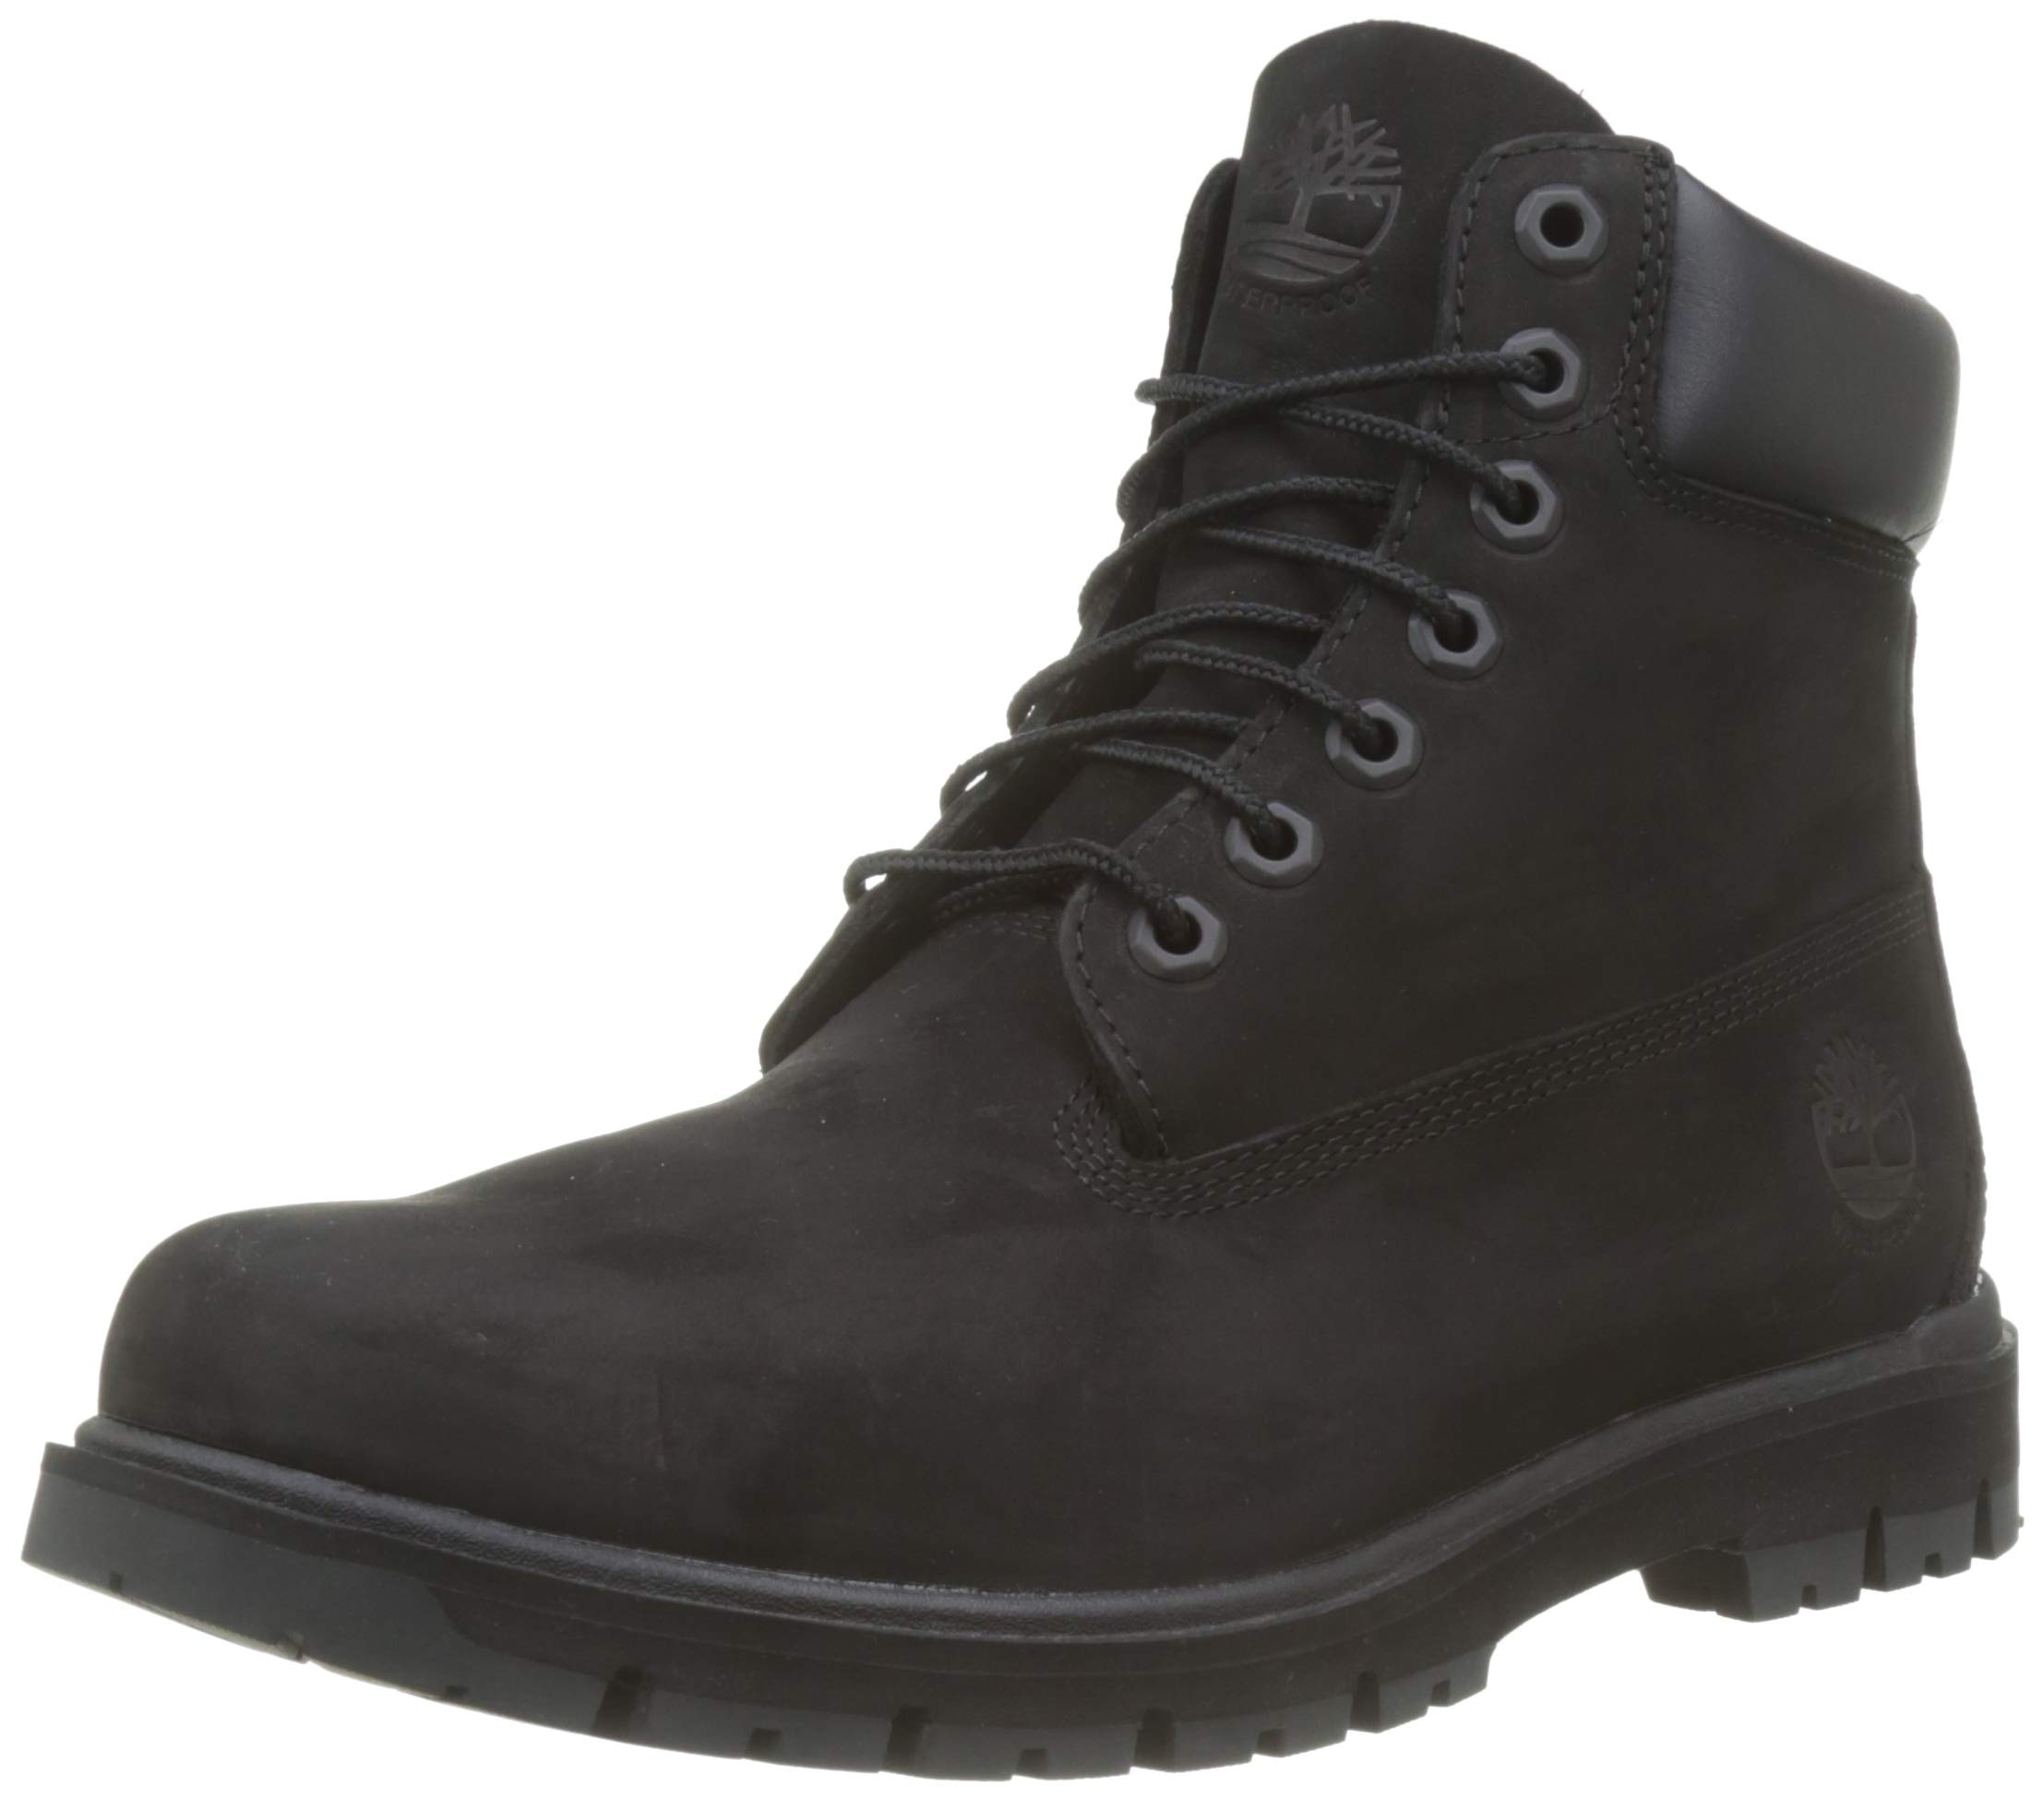 check out 59ab0 b0ac5 Timberland Radford 6-inch Waterproof, Bottes   Bottines Classiques Homme